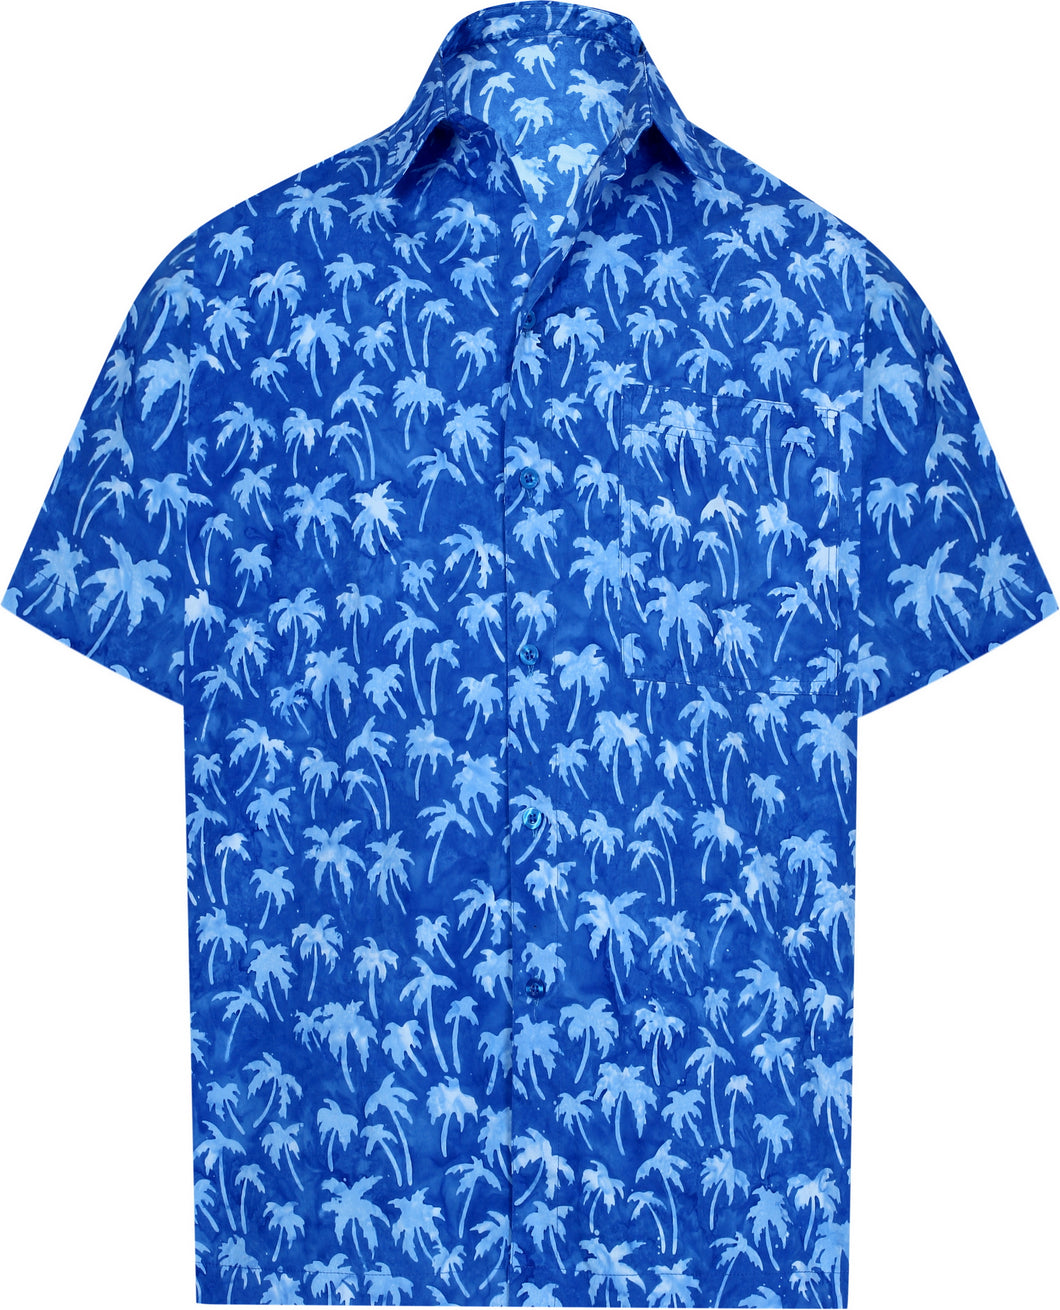 la-leela-men-casual-wear-cotton-palm-tree-hand-printed-royal-blue-hawaiian-shirt-size-s-xxl